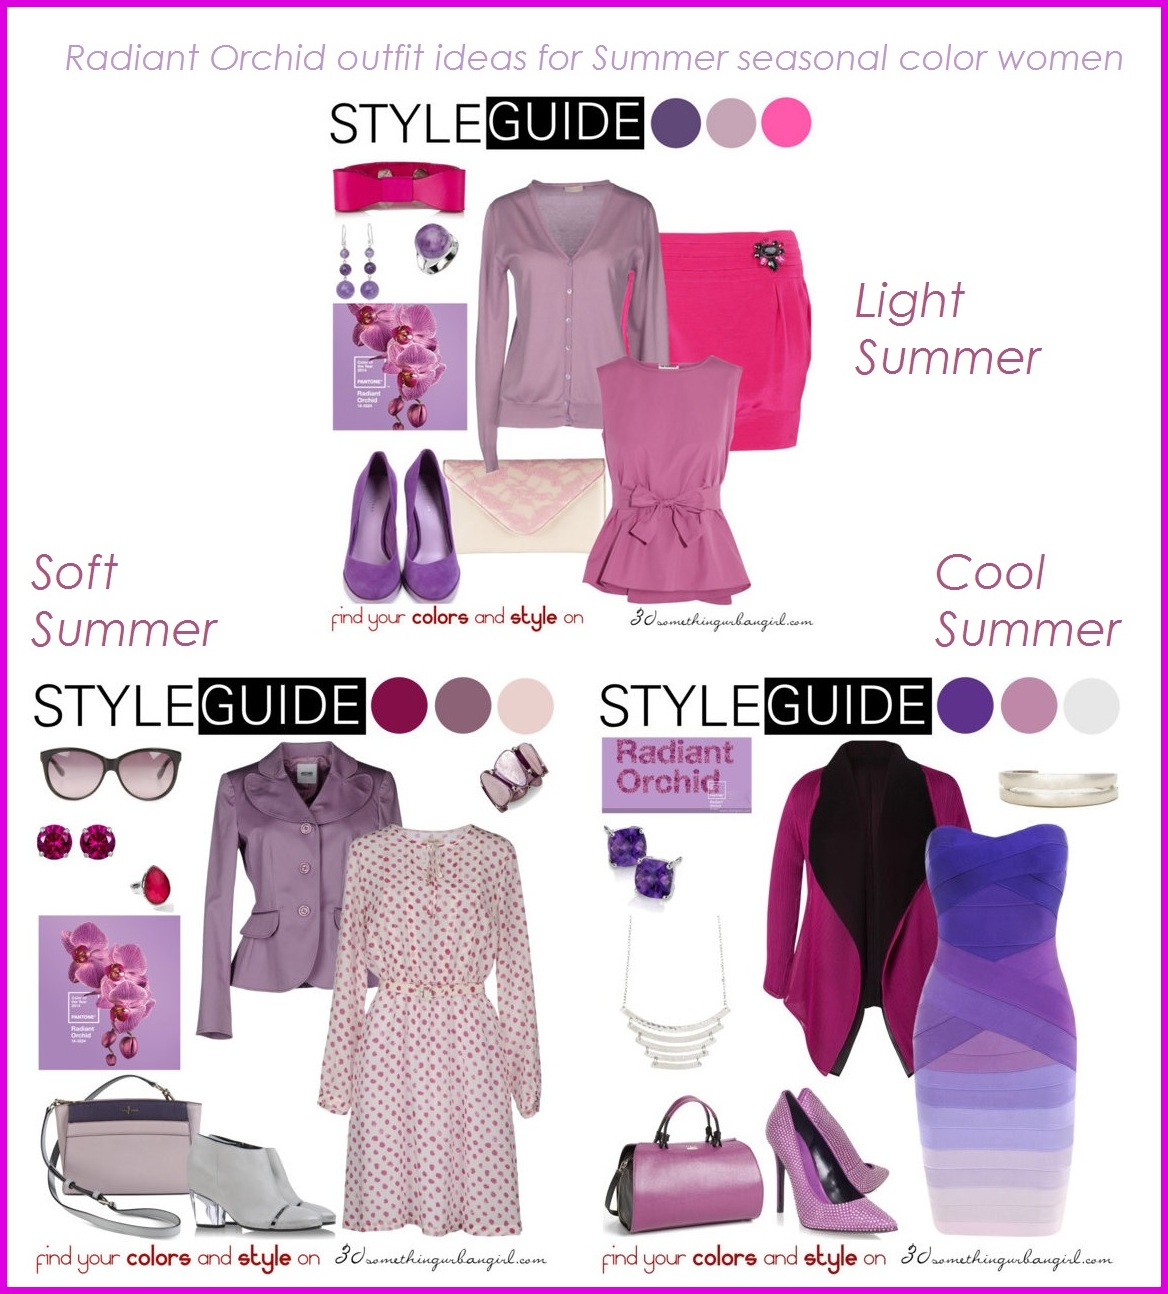 Radiant Orchid outfit ideas for Summer seasonal color women